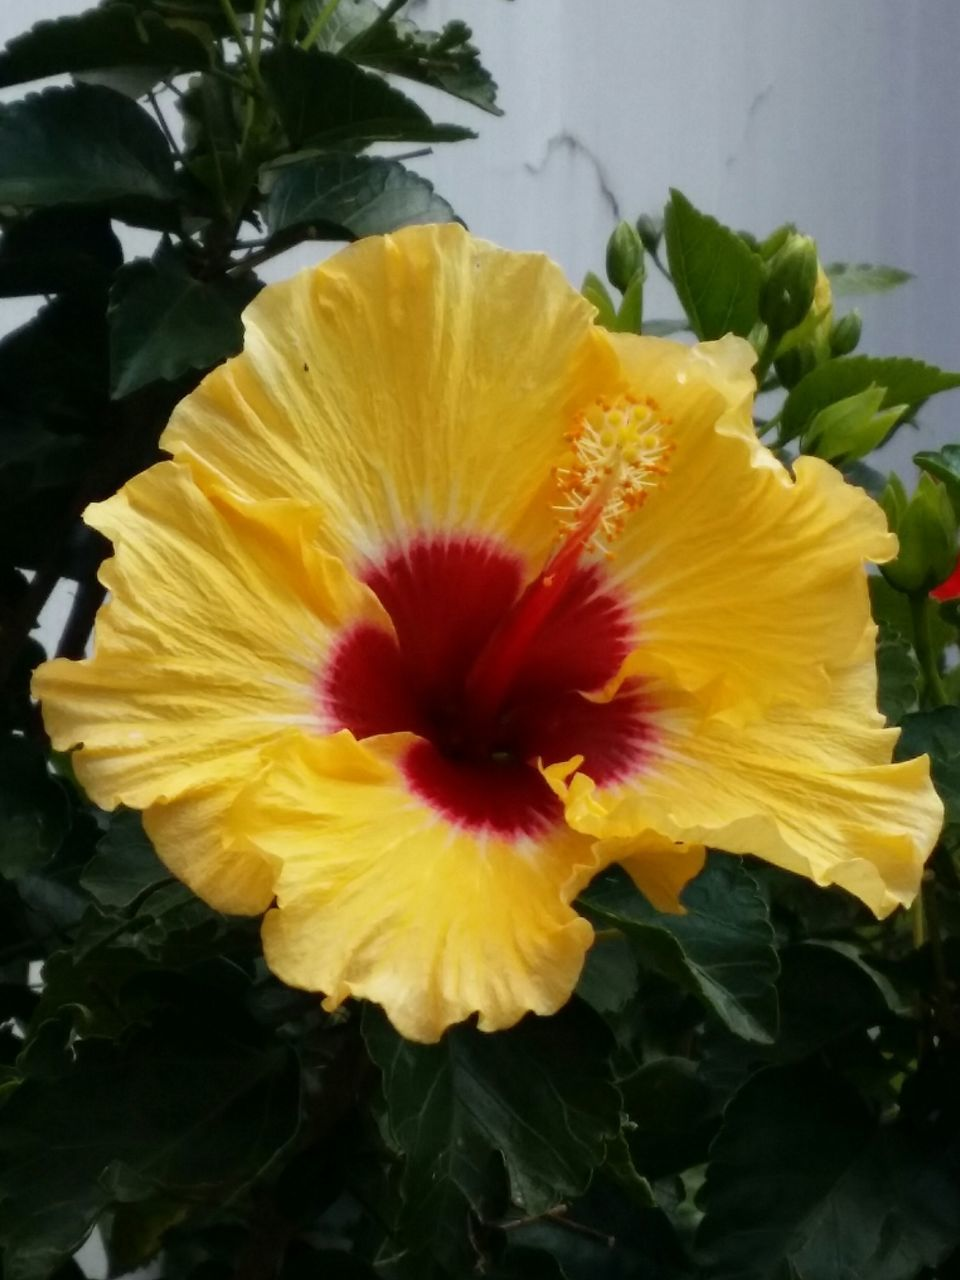 flower, yellow, petal, flower head, fragility, beauty in nature, freshness, nature, no people, close-up, plant, hibiscus, growth, outdoors, blooming, day